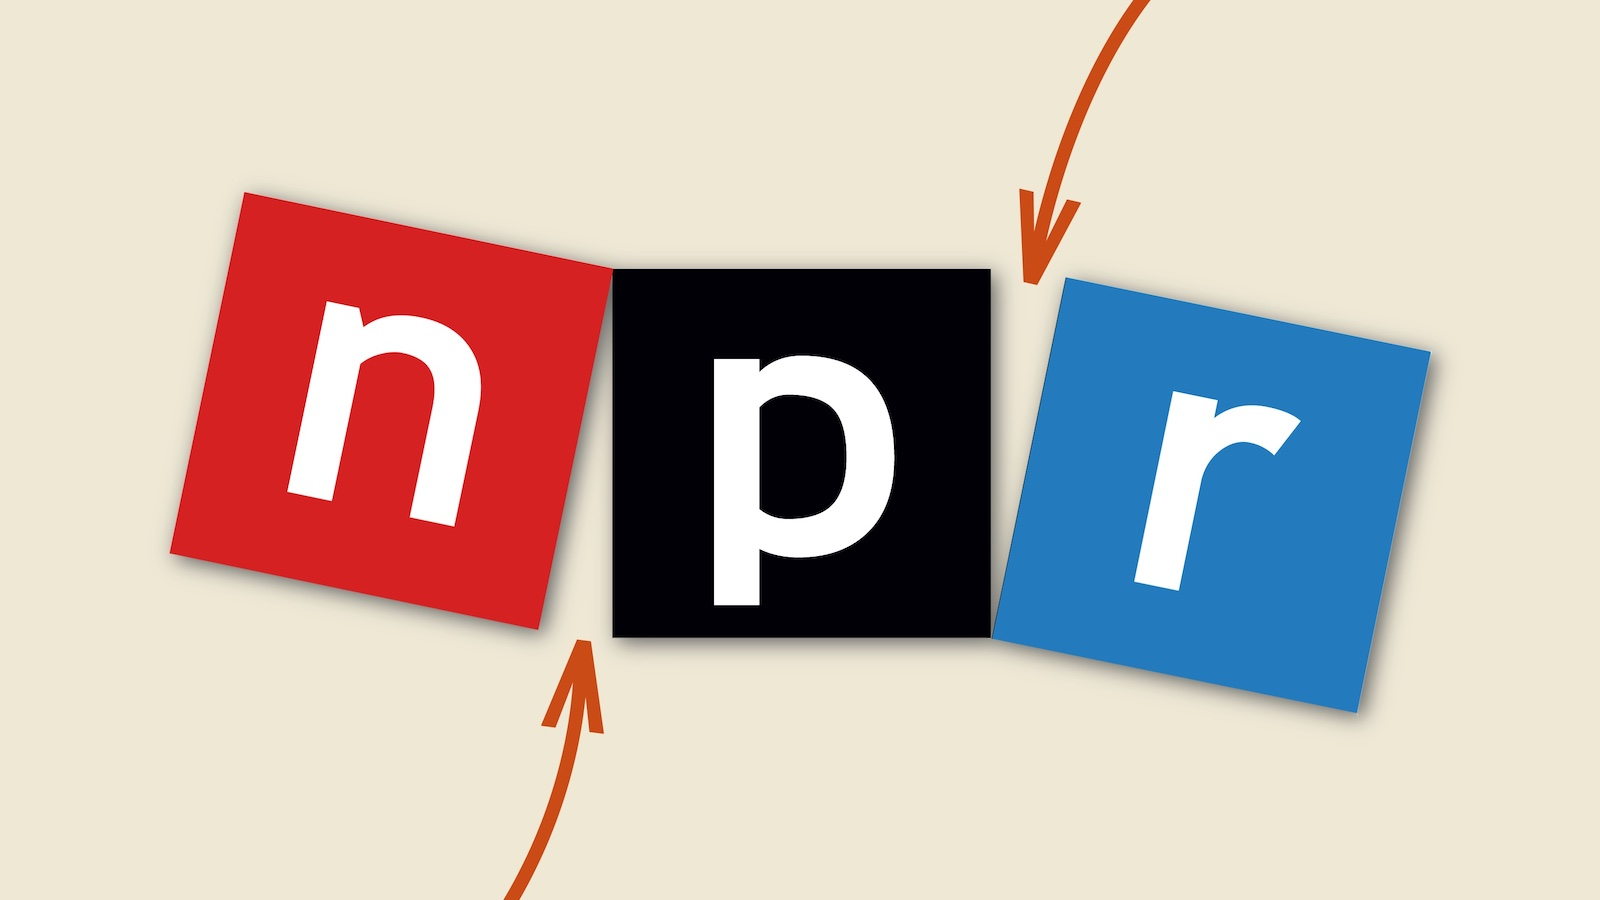 Could technology built for advertising make public radio